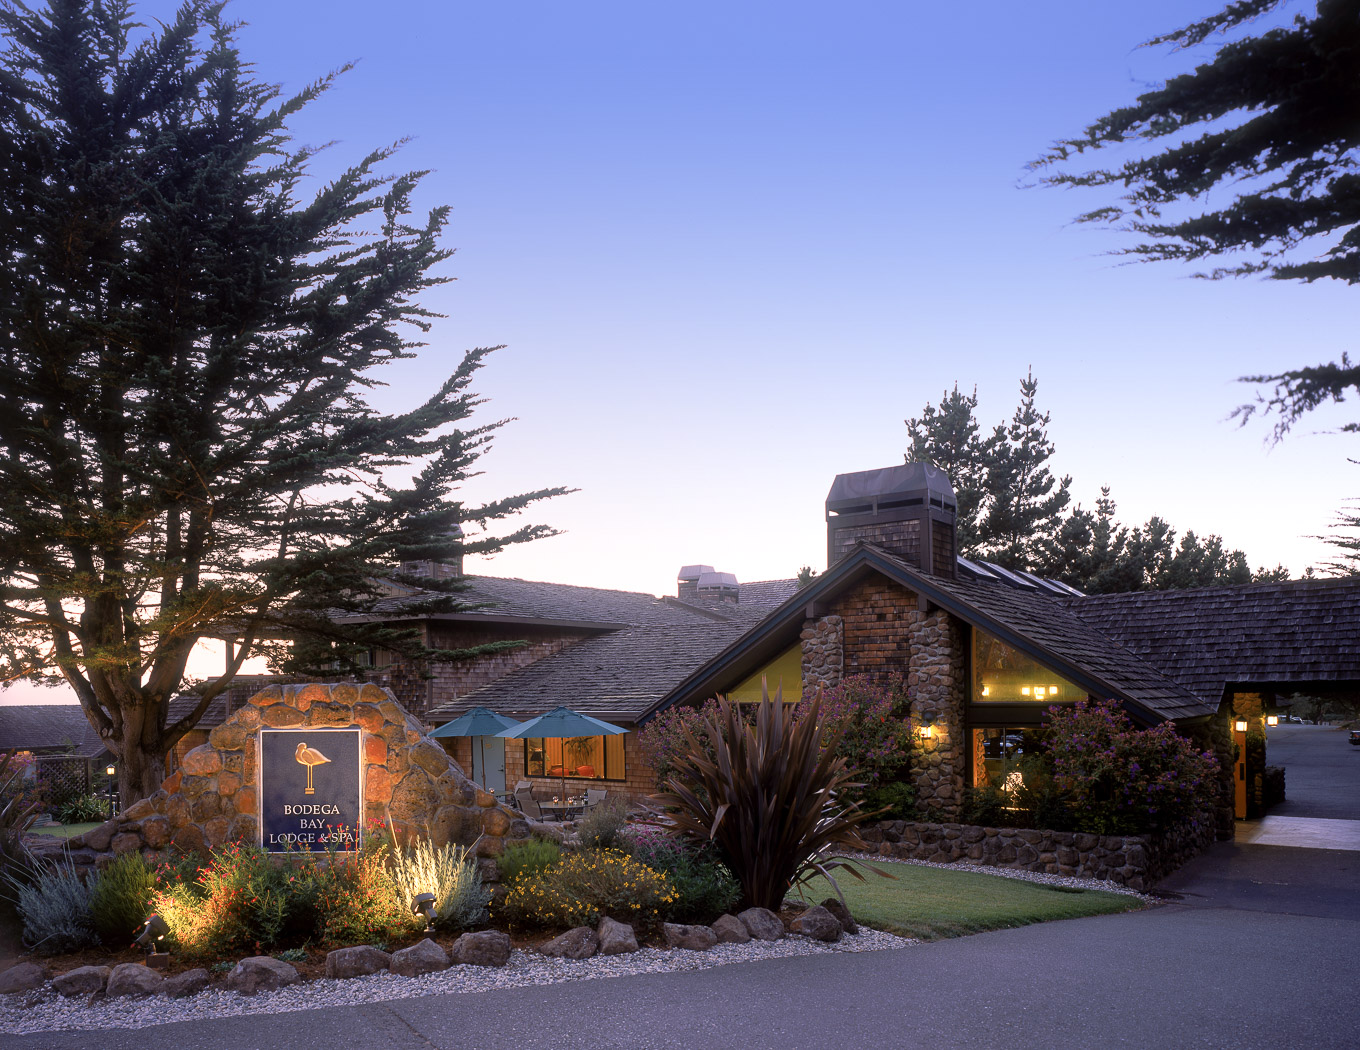 Welcome to Marin Lodge. Welcome to Marin Lodge where you receive hotel comfort at motel prices, all within 12 miles of San Francisco, and just 21 miles south of Wine Country.